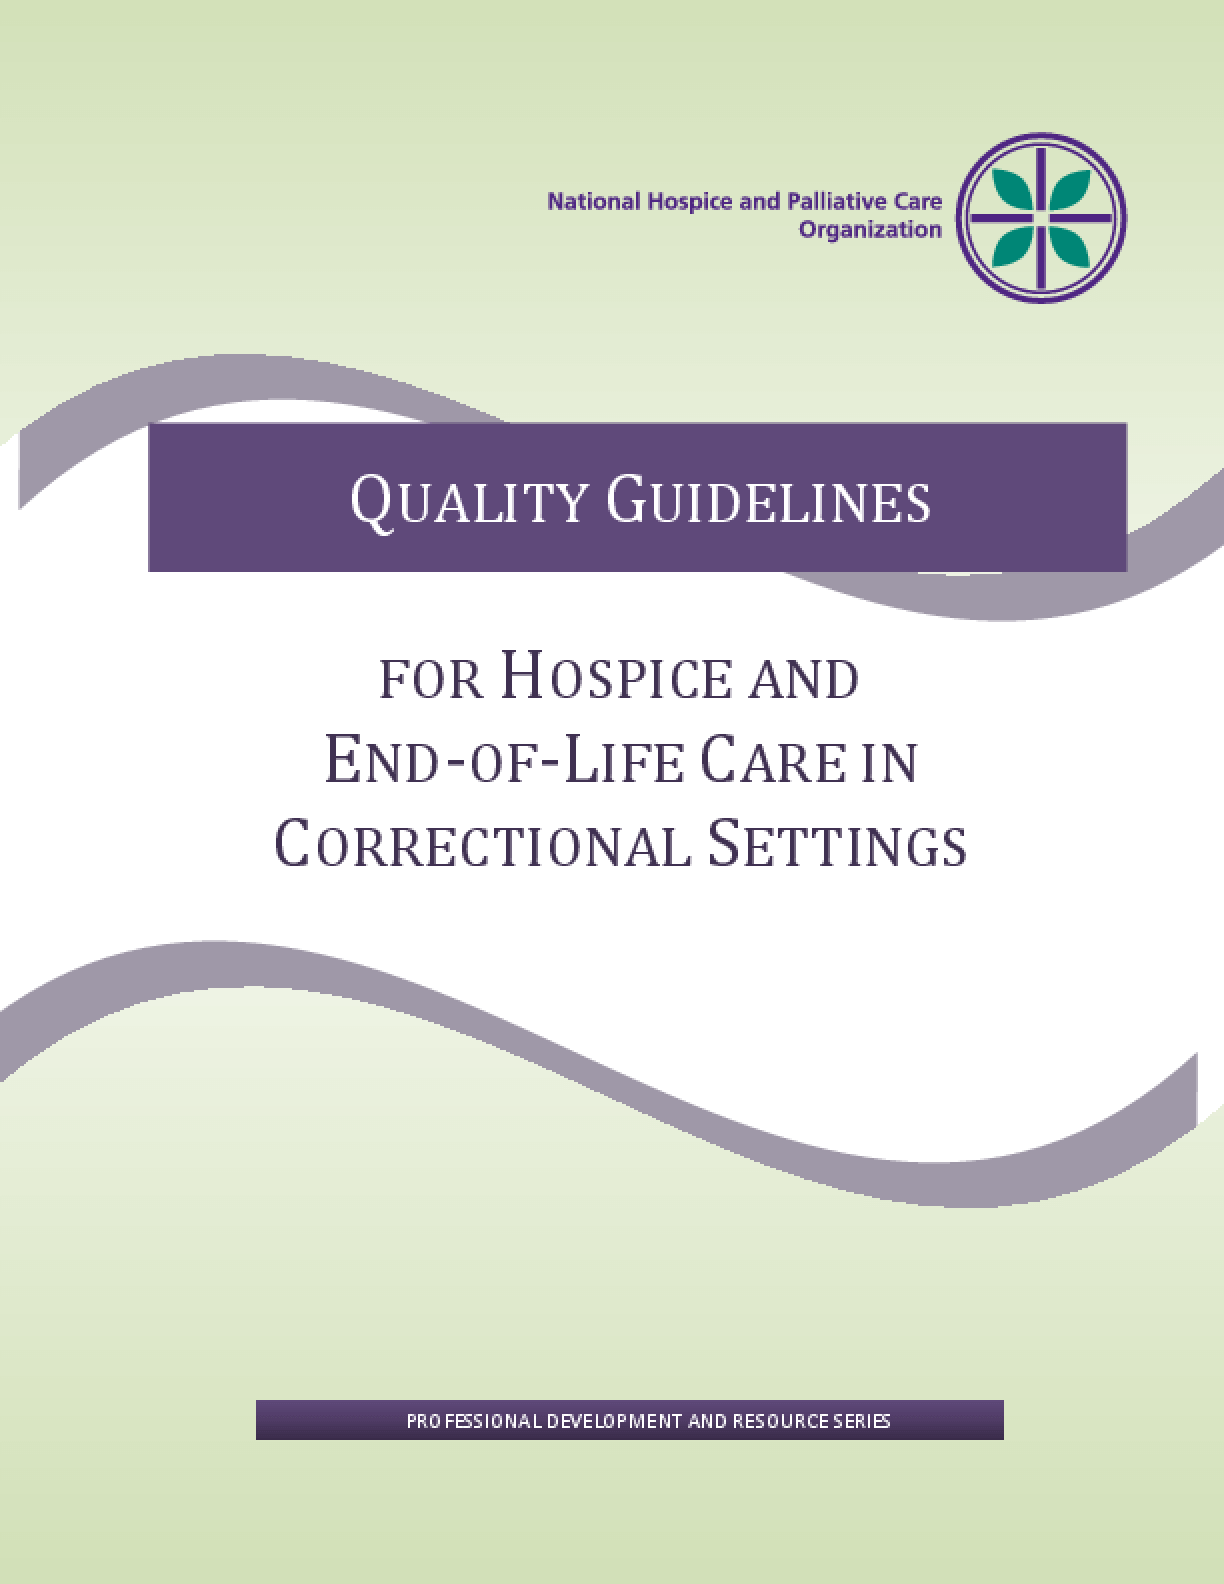 Quality Guidelines for Hospice and End-of-Life Care in Correctional Settings